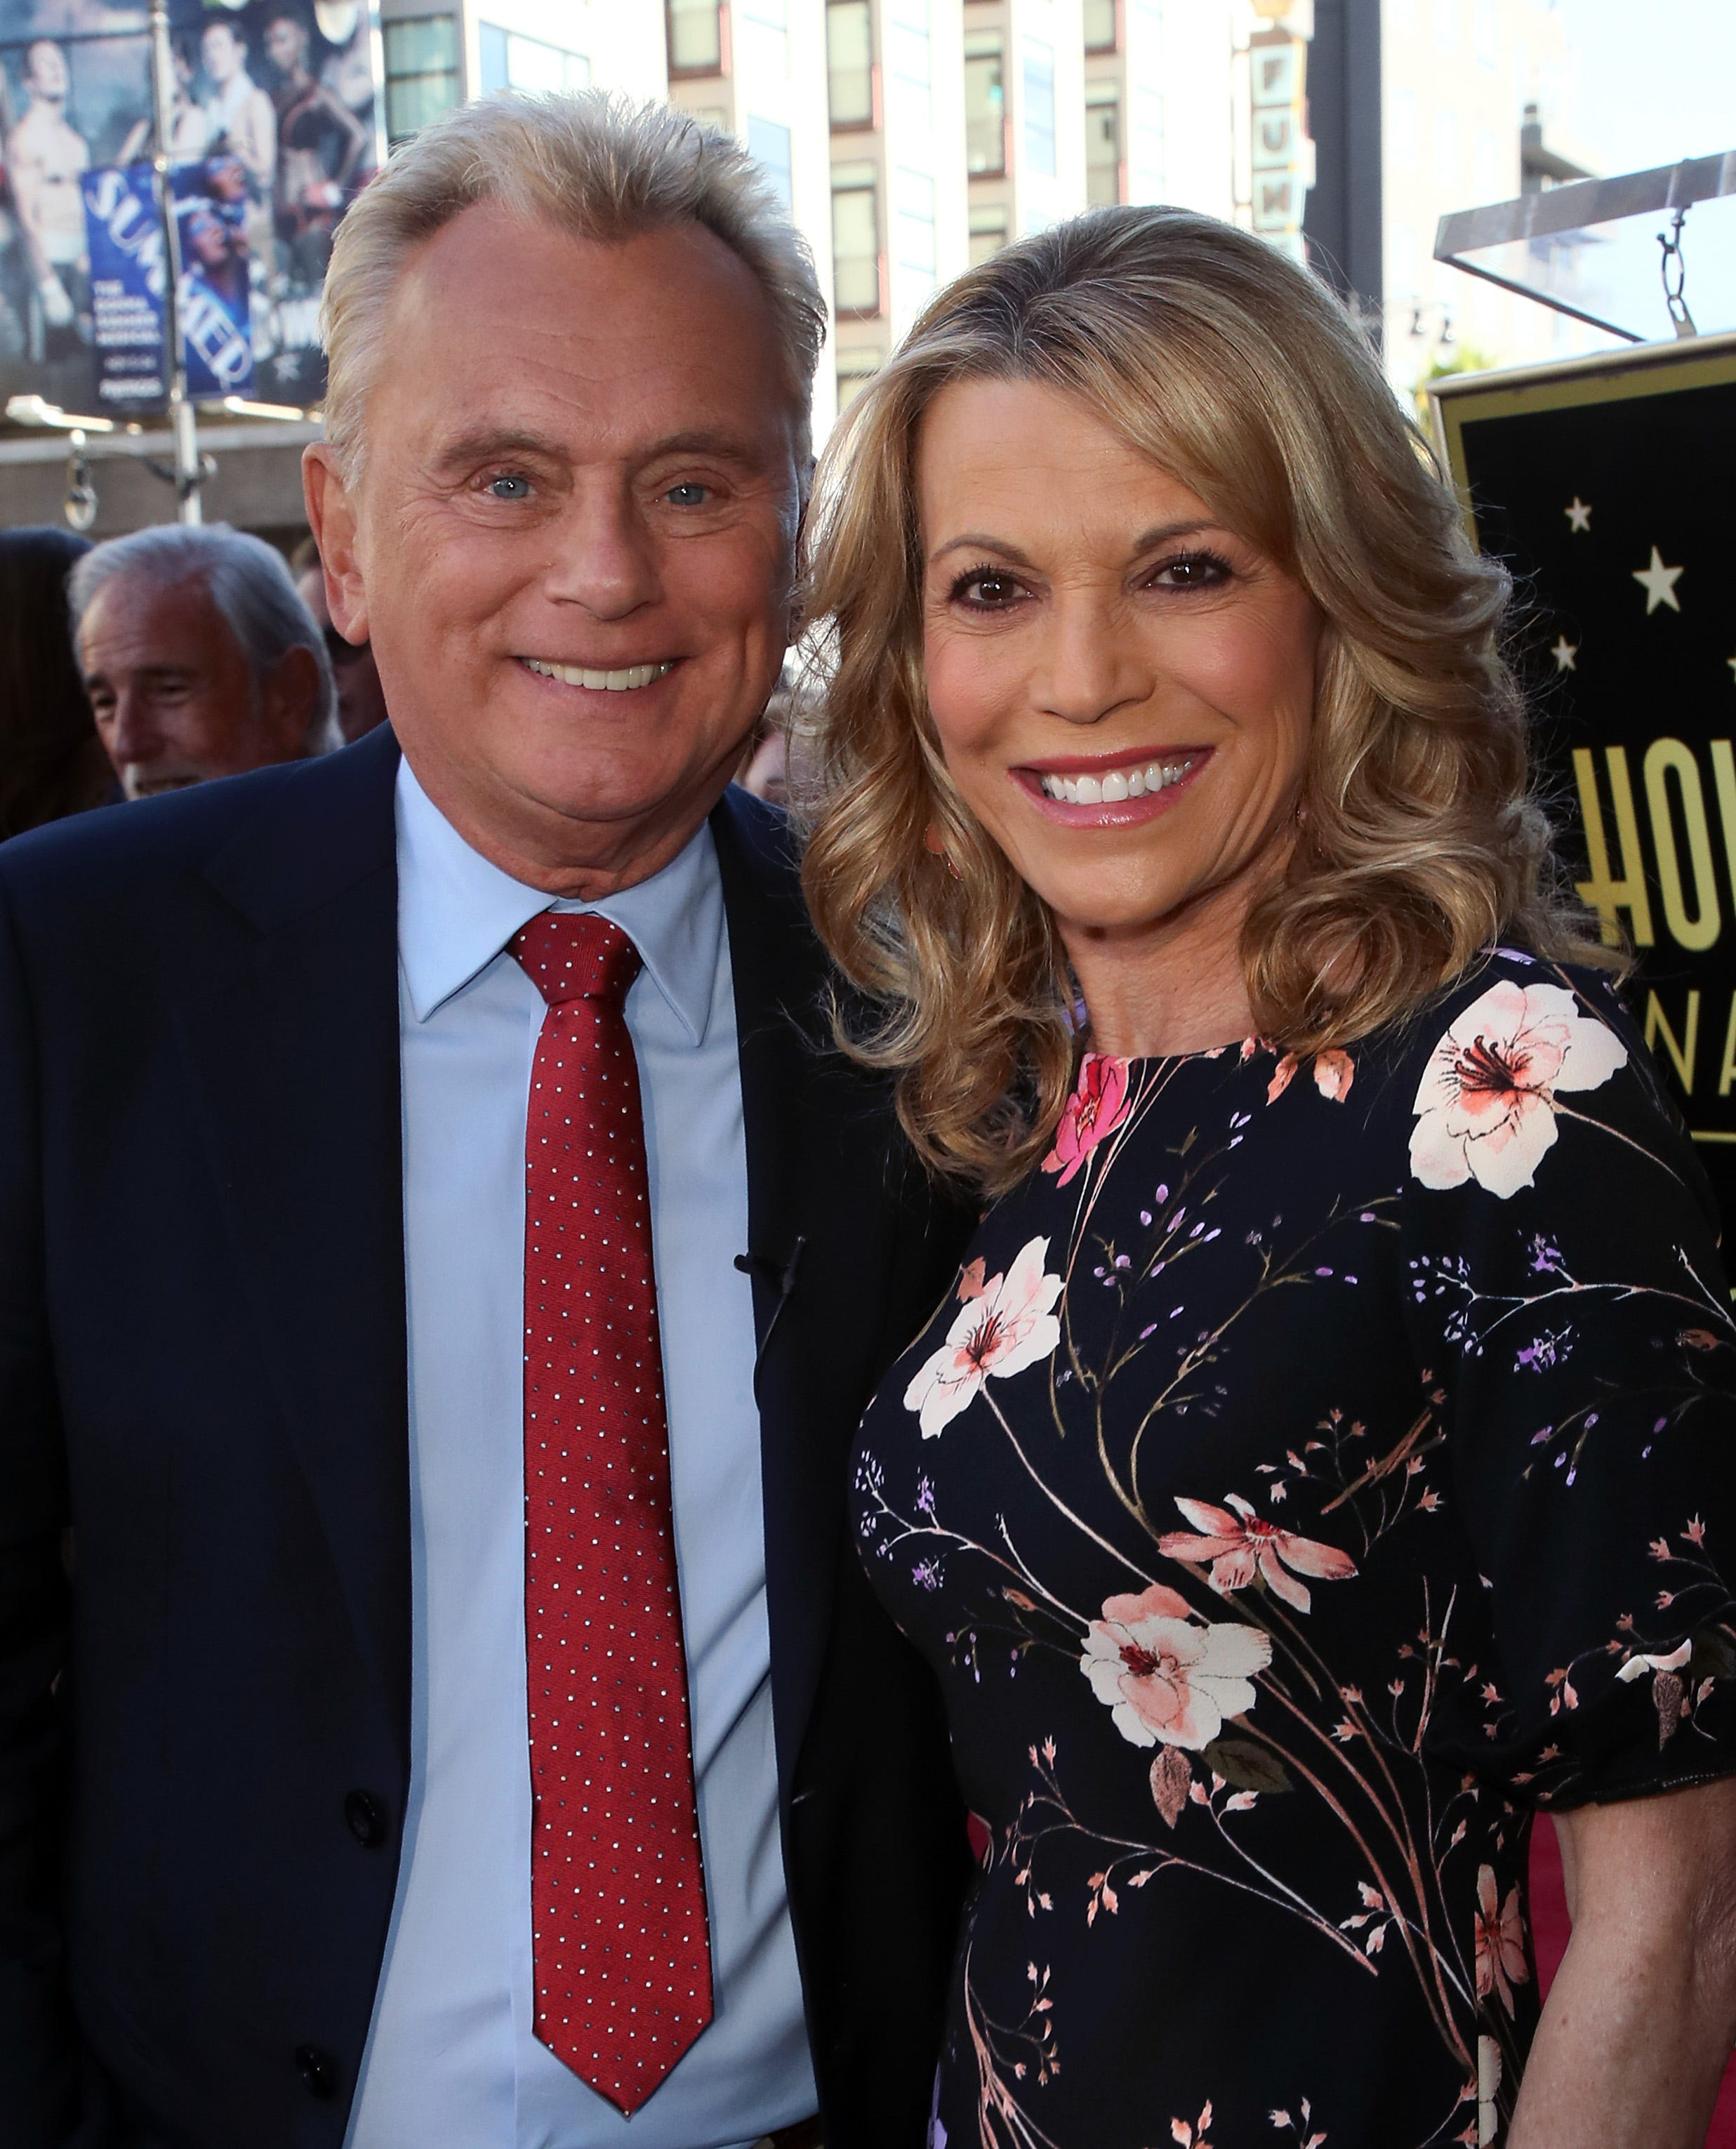 PAT SAJAK Host of Wheel of Fortune T V Show Pin Fastener Name Badge Halloween Costume Prop Game Night Cosplay